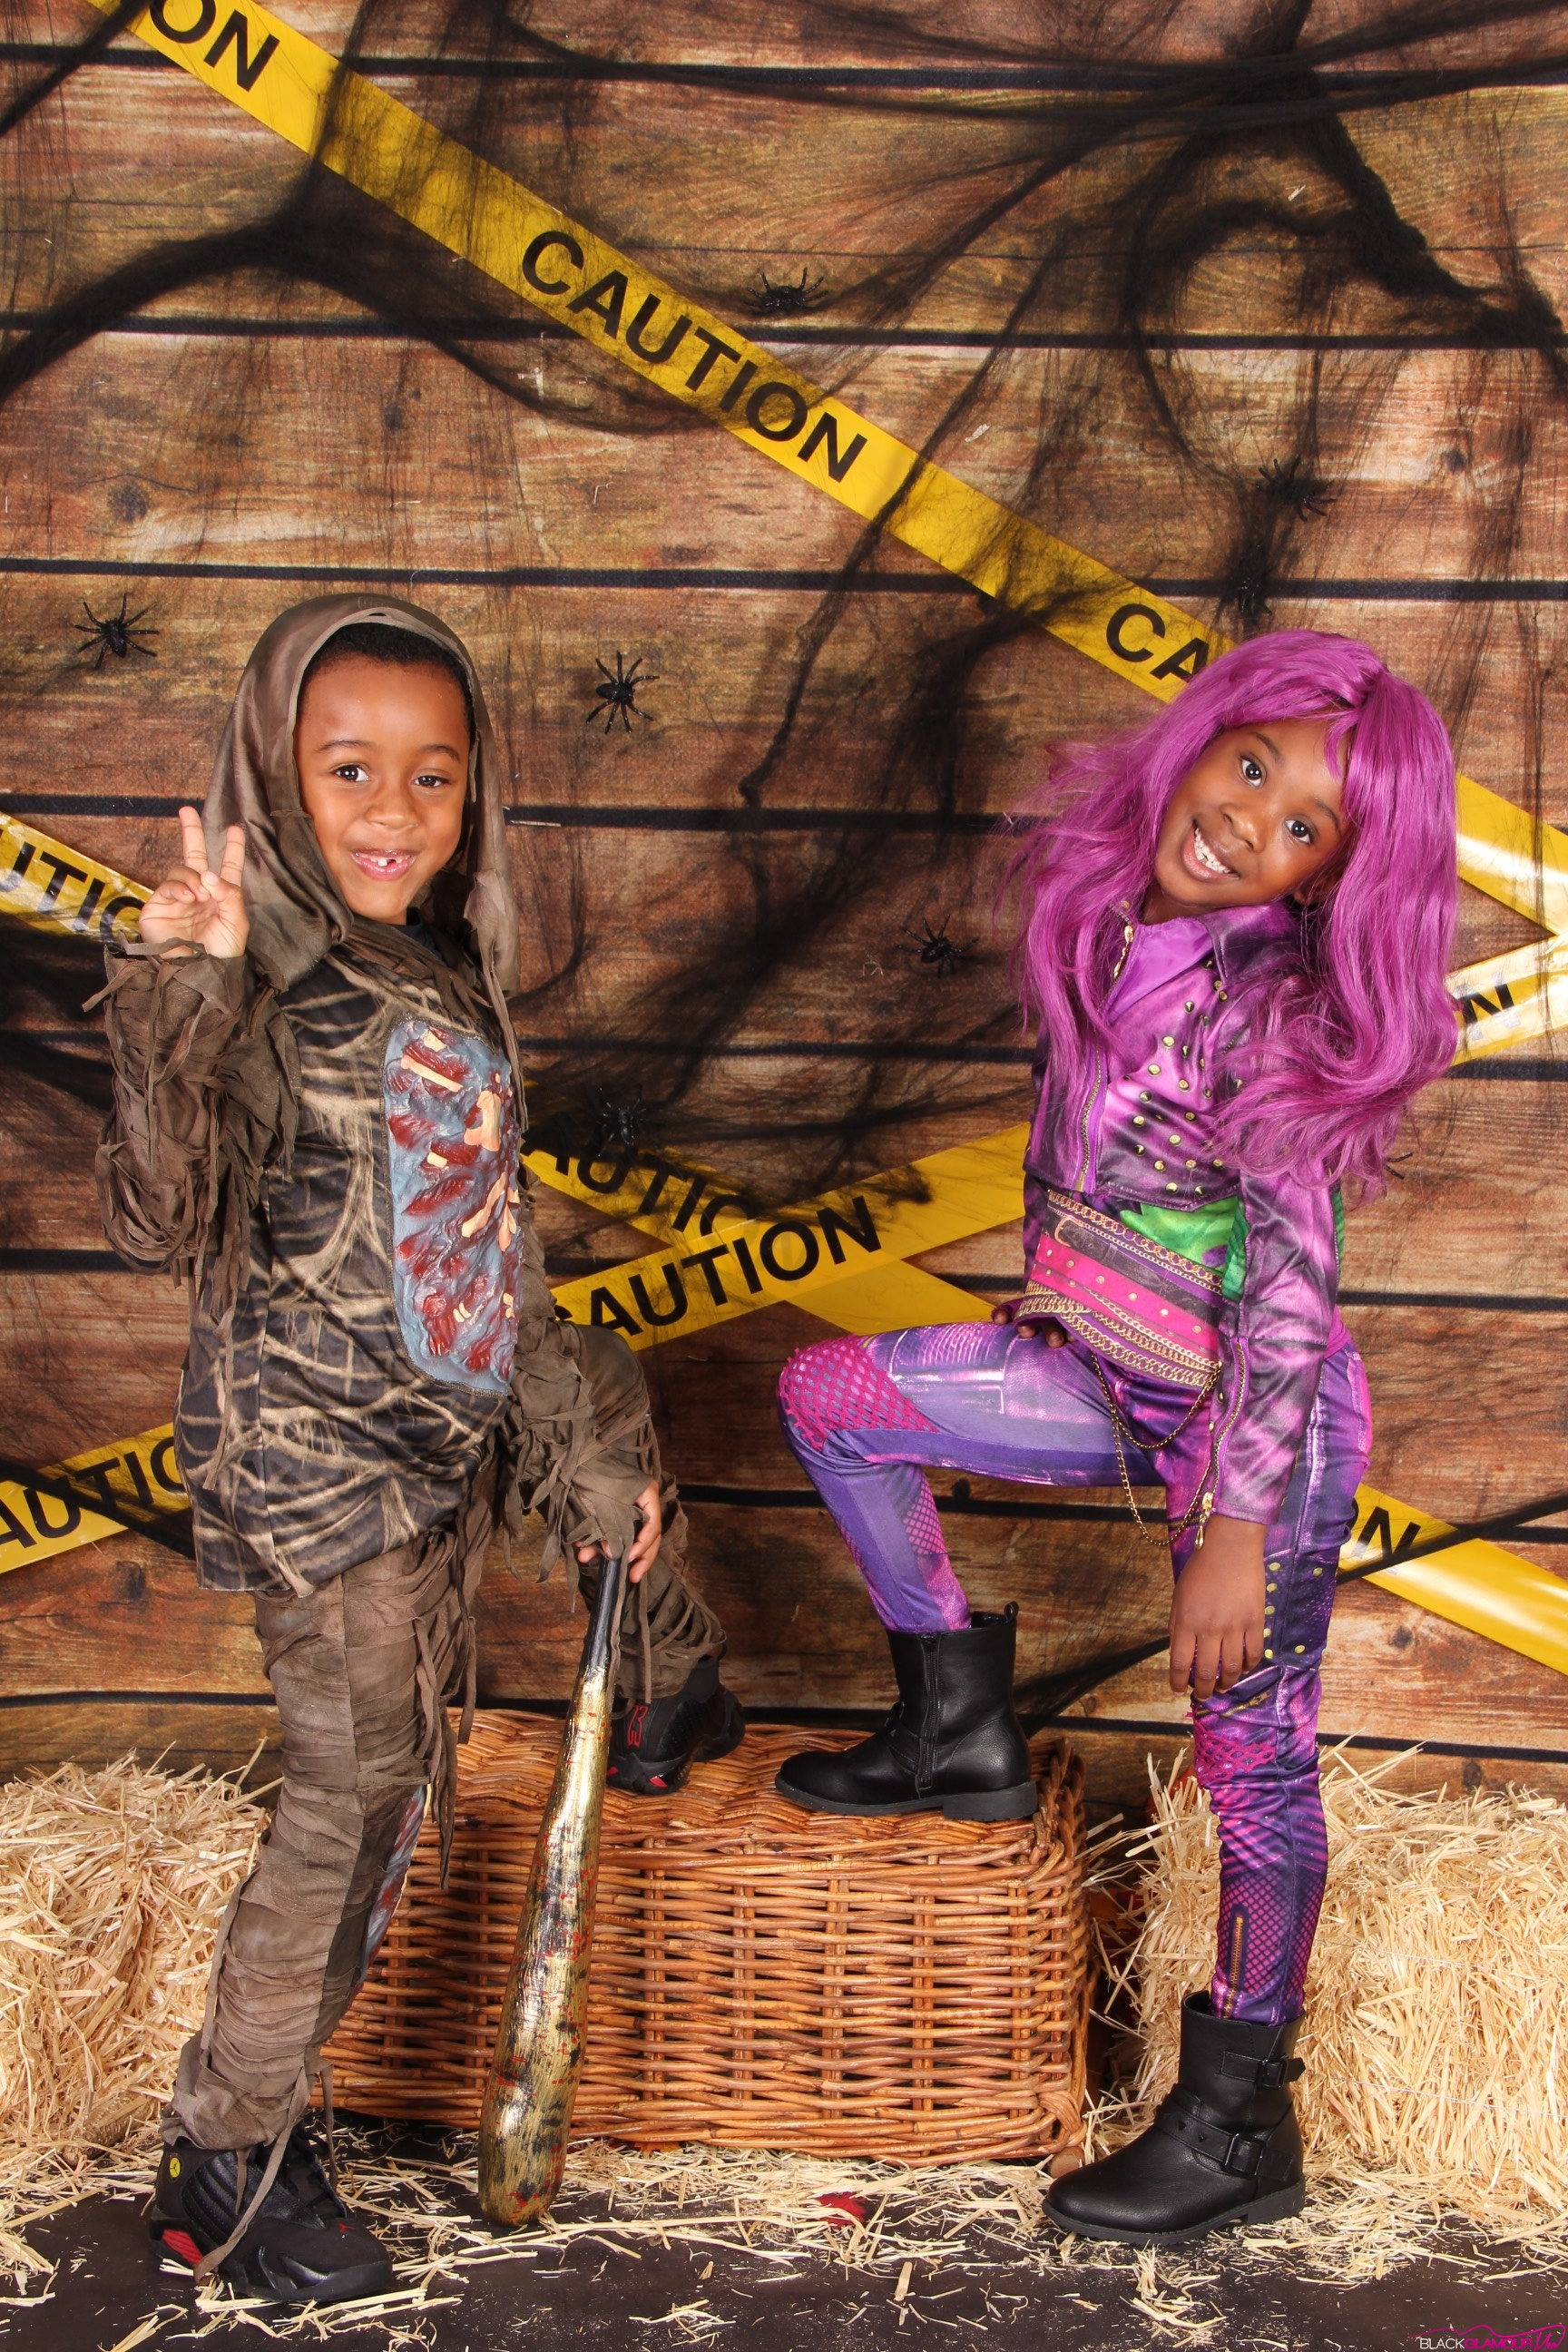 When A Zombie Met Up With A Disney Descendant For A Halloween Photo Shoot